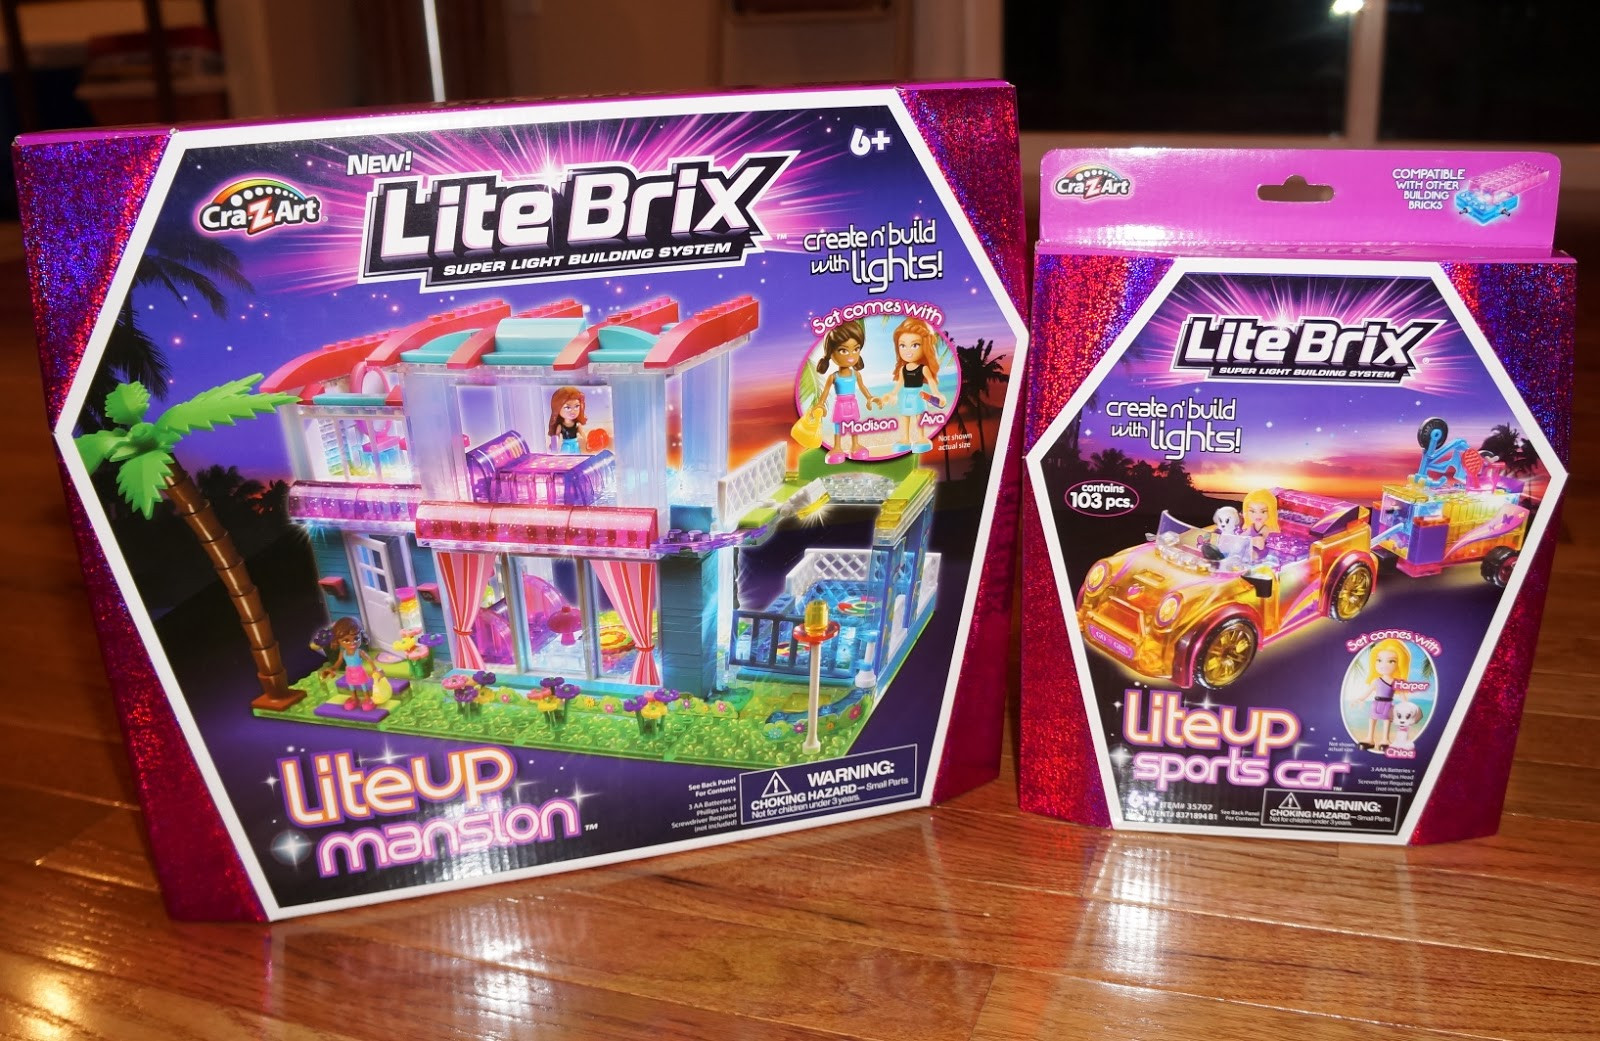 Evan and Lauren\'s Cool Blog: 11/21/14: Lite Brix Mansion and Fashion ...